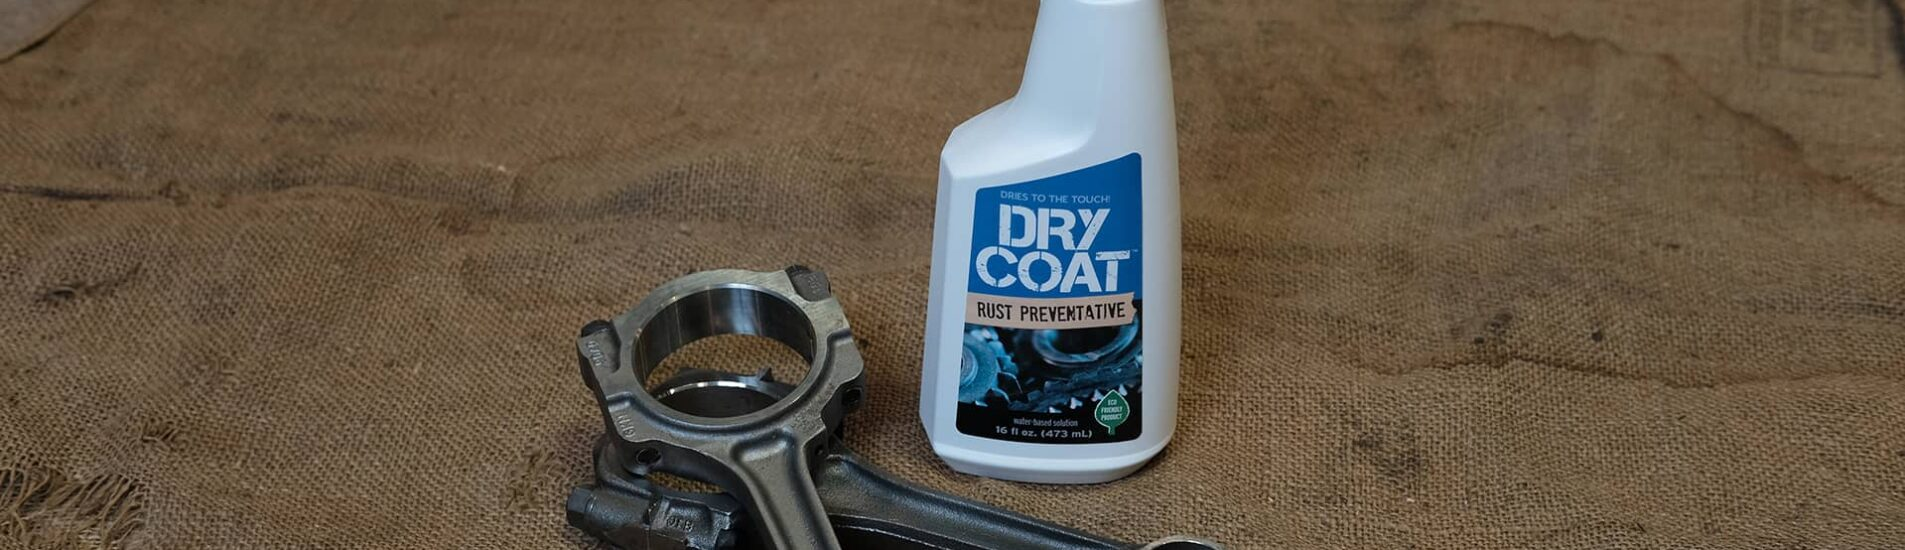 Dry Coat Rust Preventative bottle